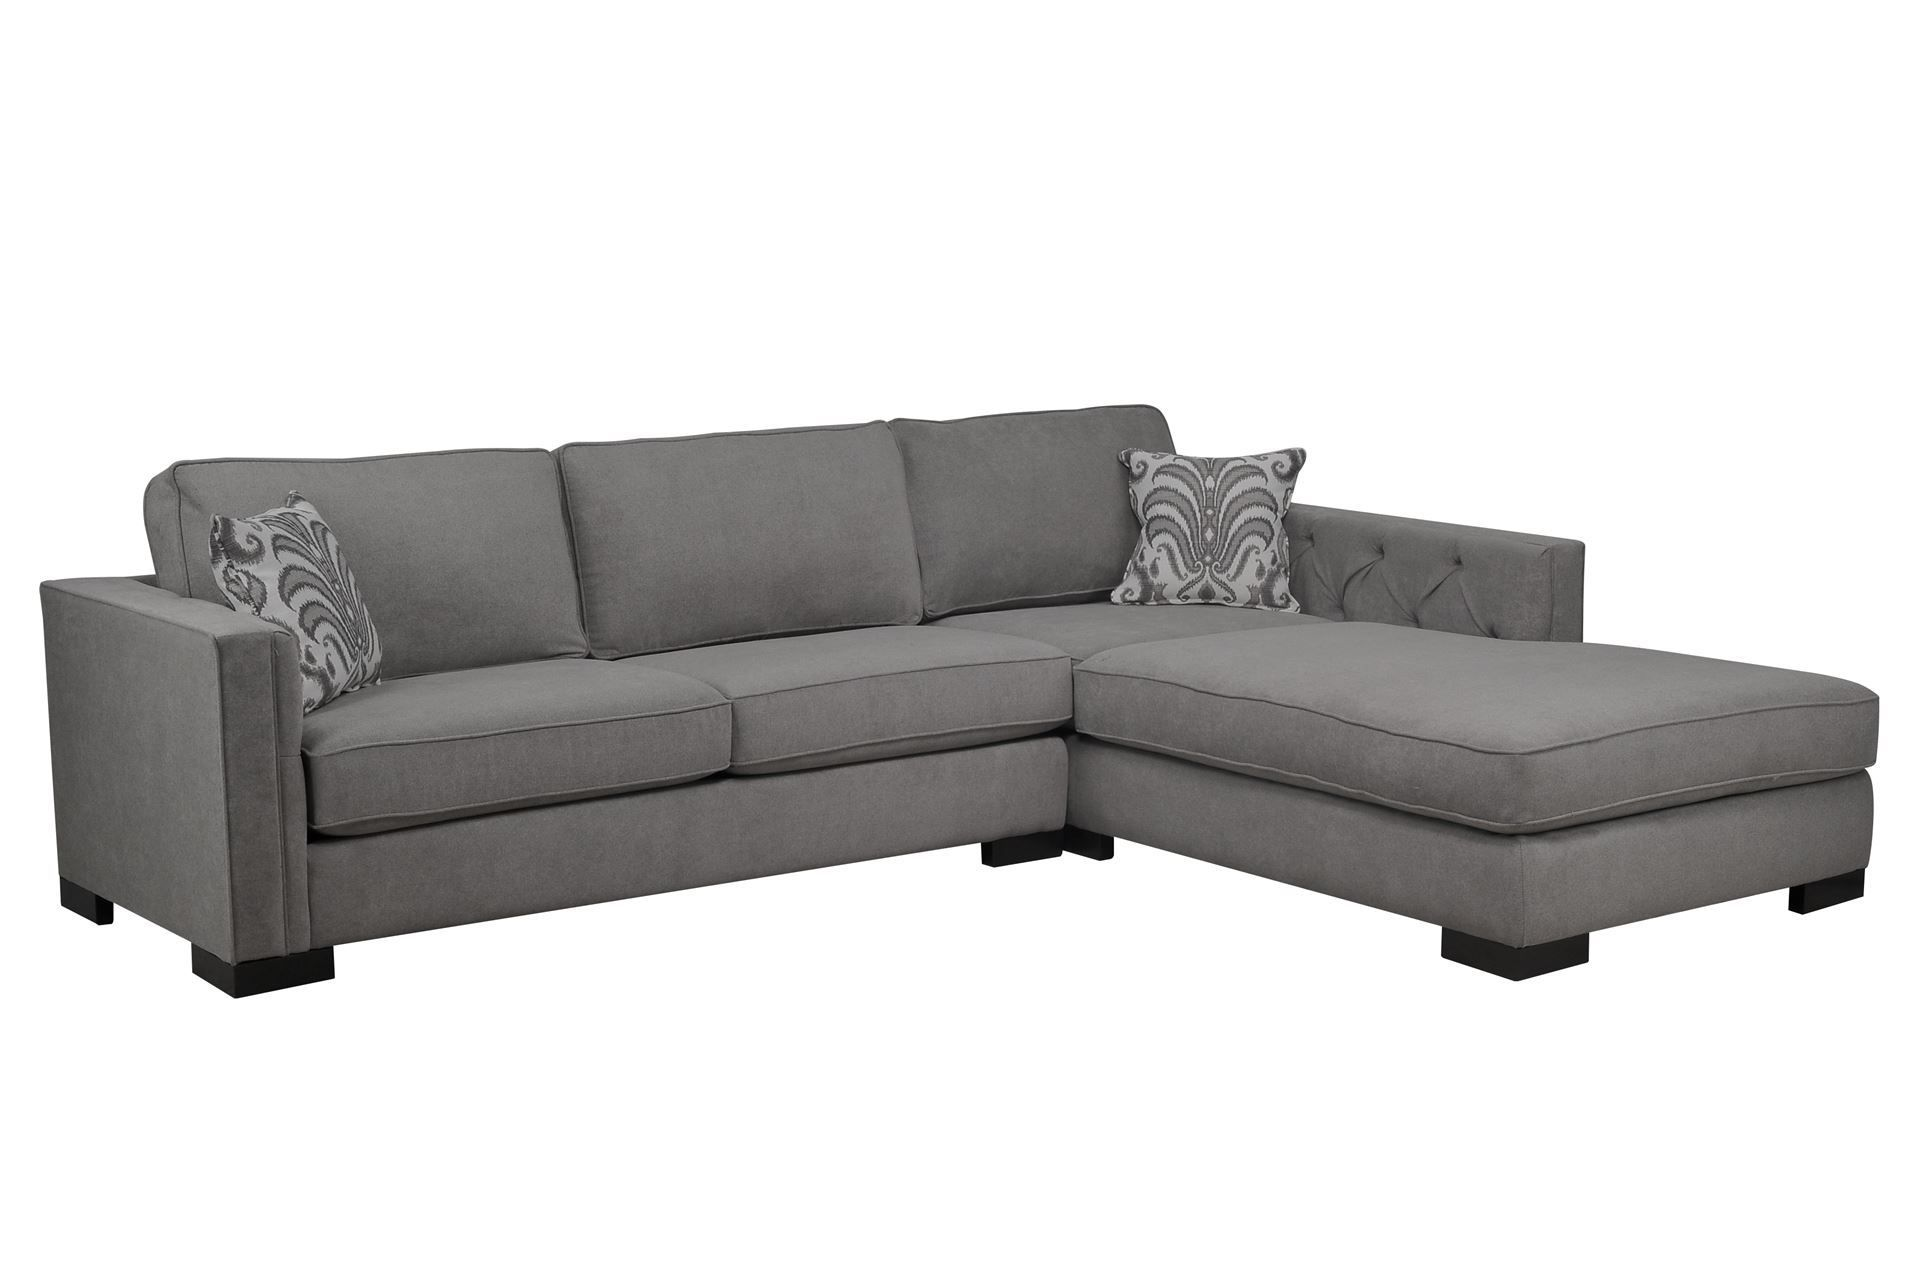 Julius 2 Piece Sofa Chaise The shape of this piece would work